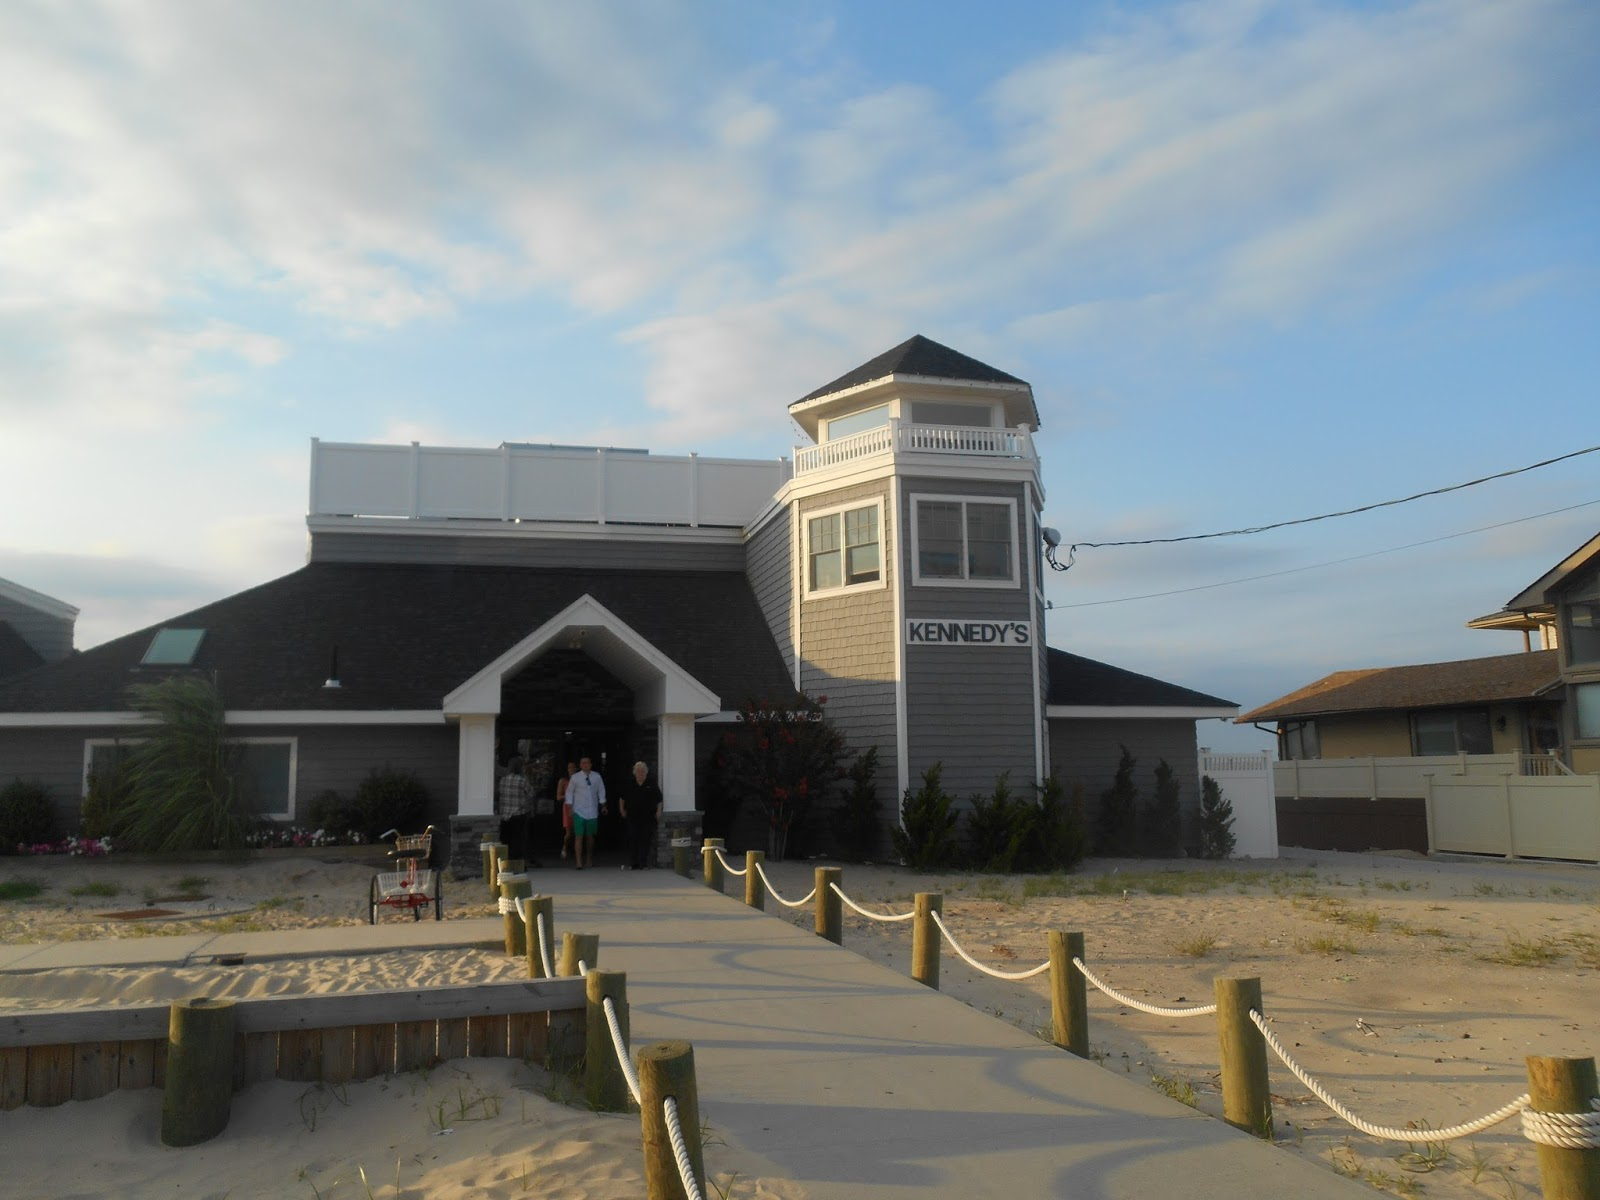 Merle\'s Whirls: Kennedy\'s Restaurant Makes a Breezy Point